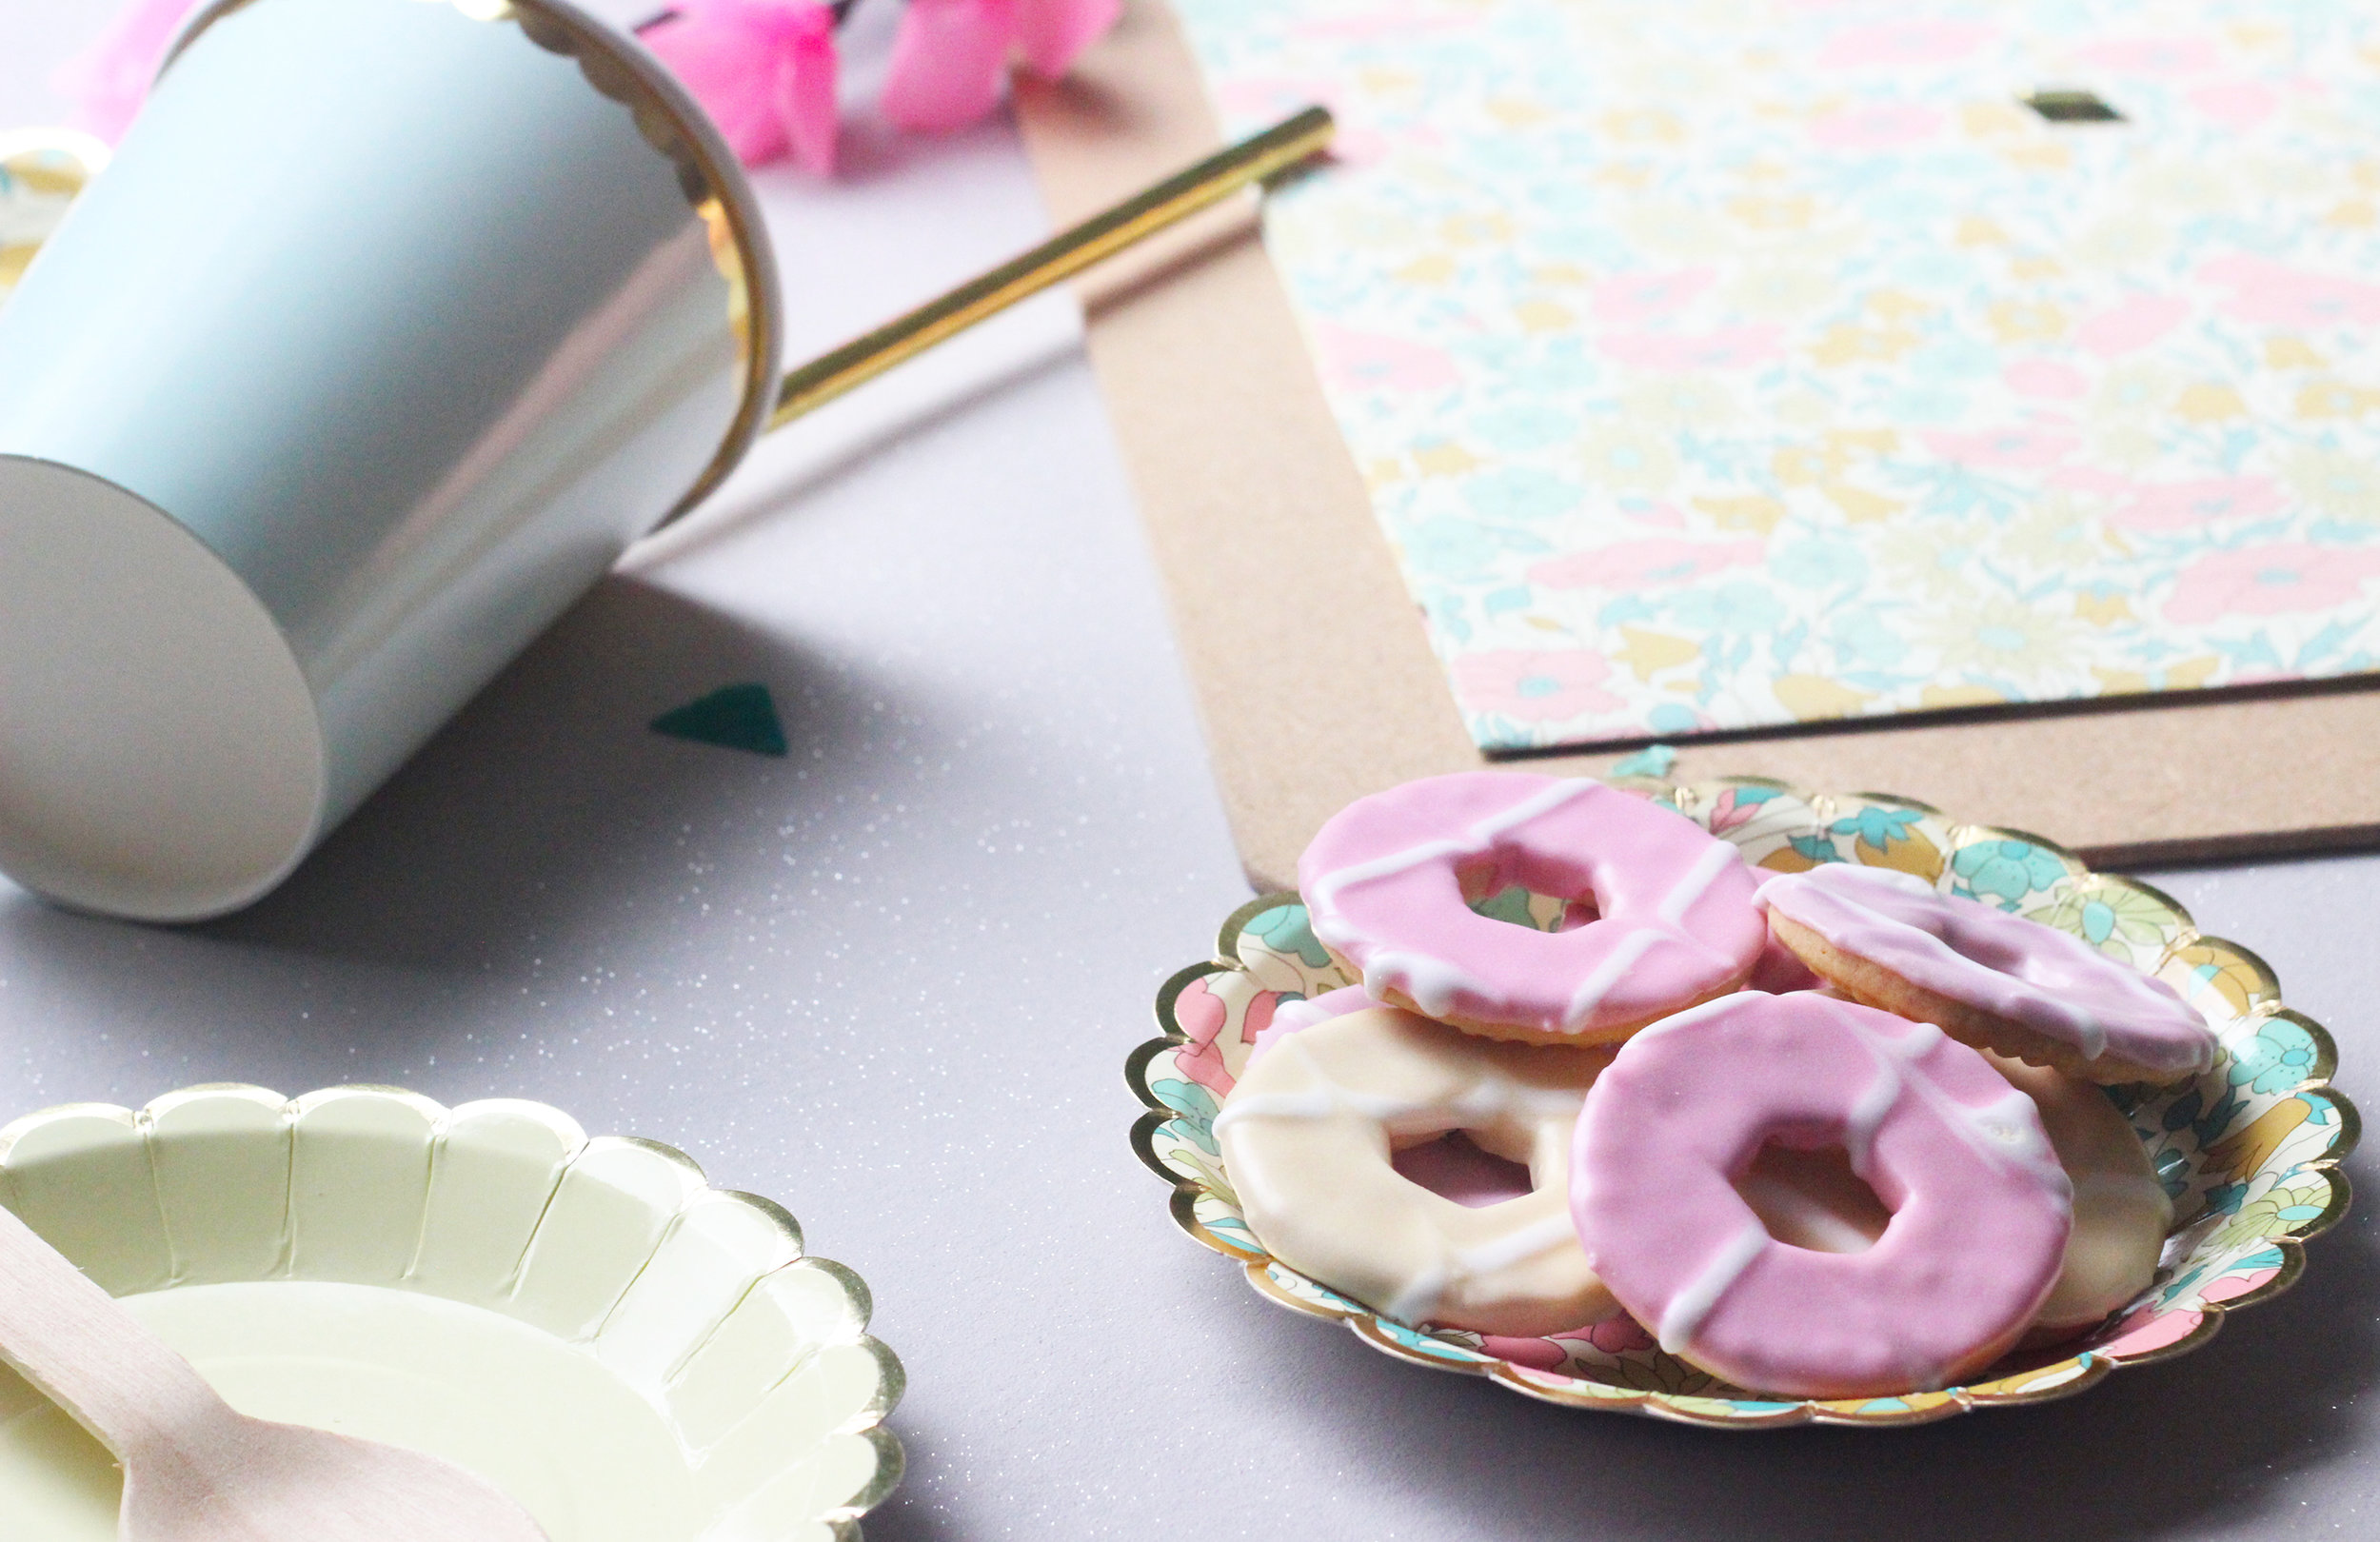 Party inspiration for girls. Girls party planning and styling ideas. Pastel party ideas.